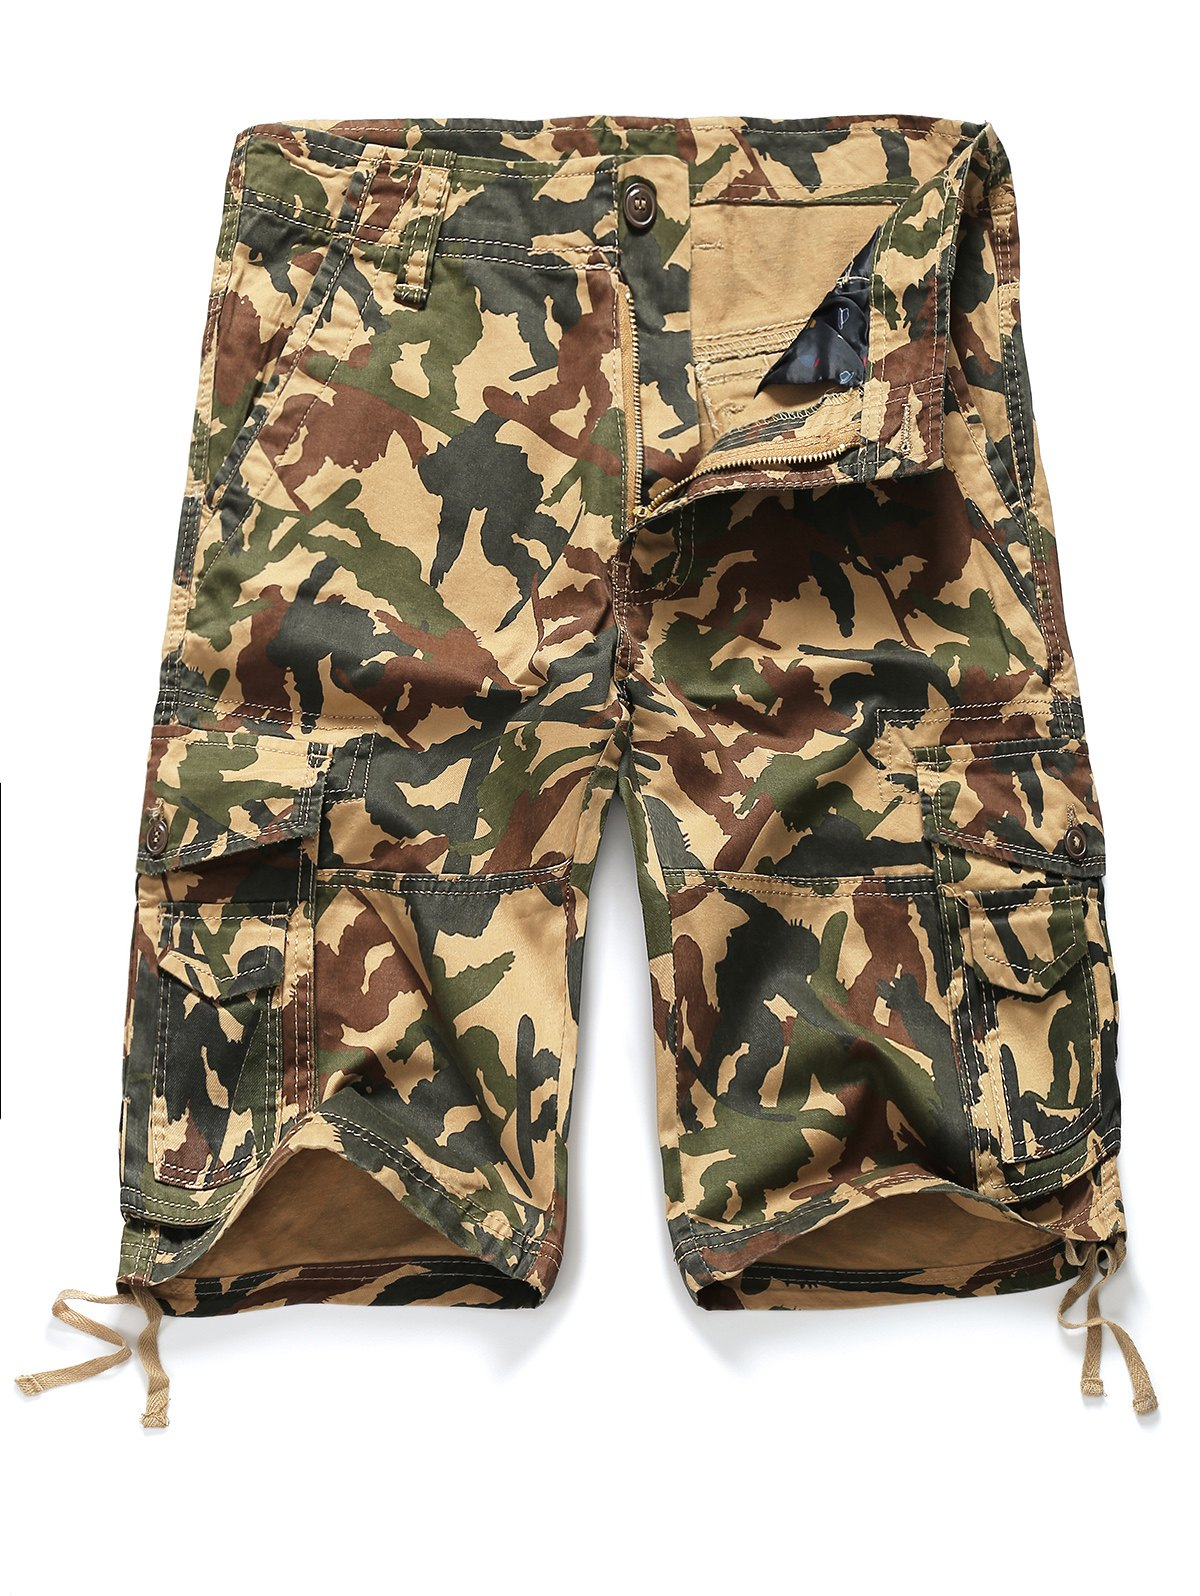 Straight Leg Camouflage Pattern Zipper Fly Pockets Embellished Men's Shorts - CAMOUFLAGE 3XL